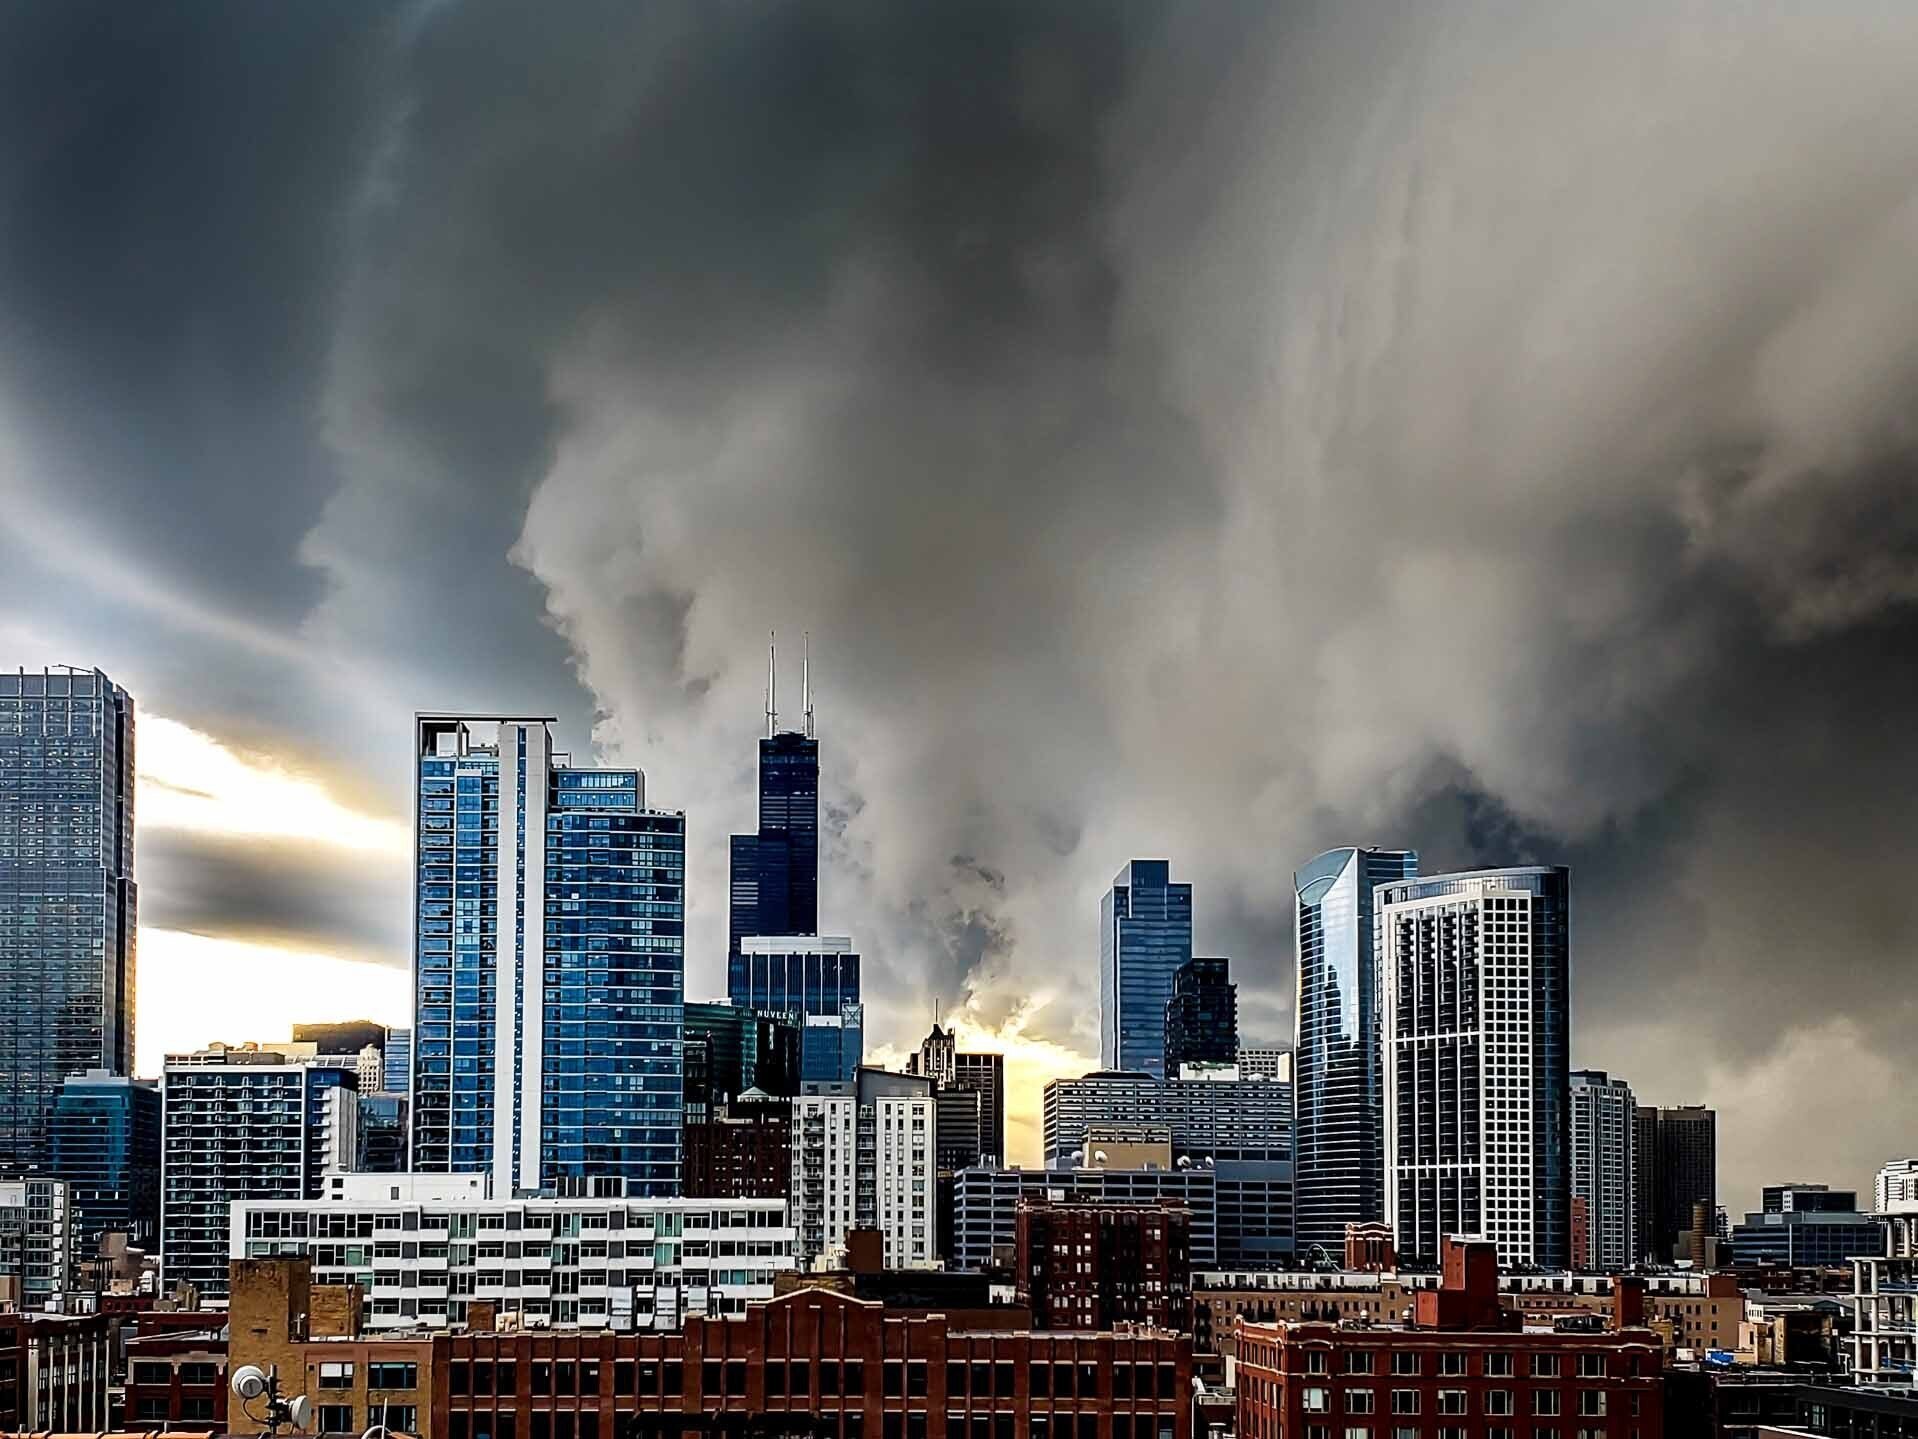 A tornado warning has been issued for parts of Chicago